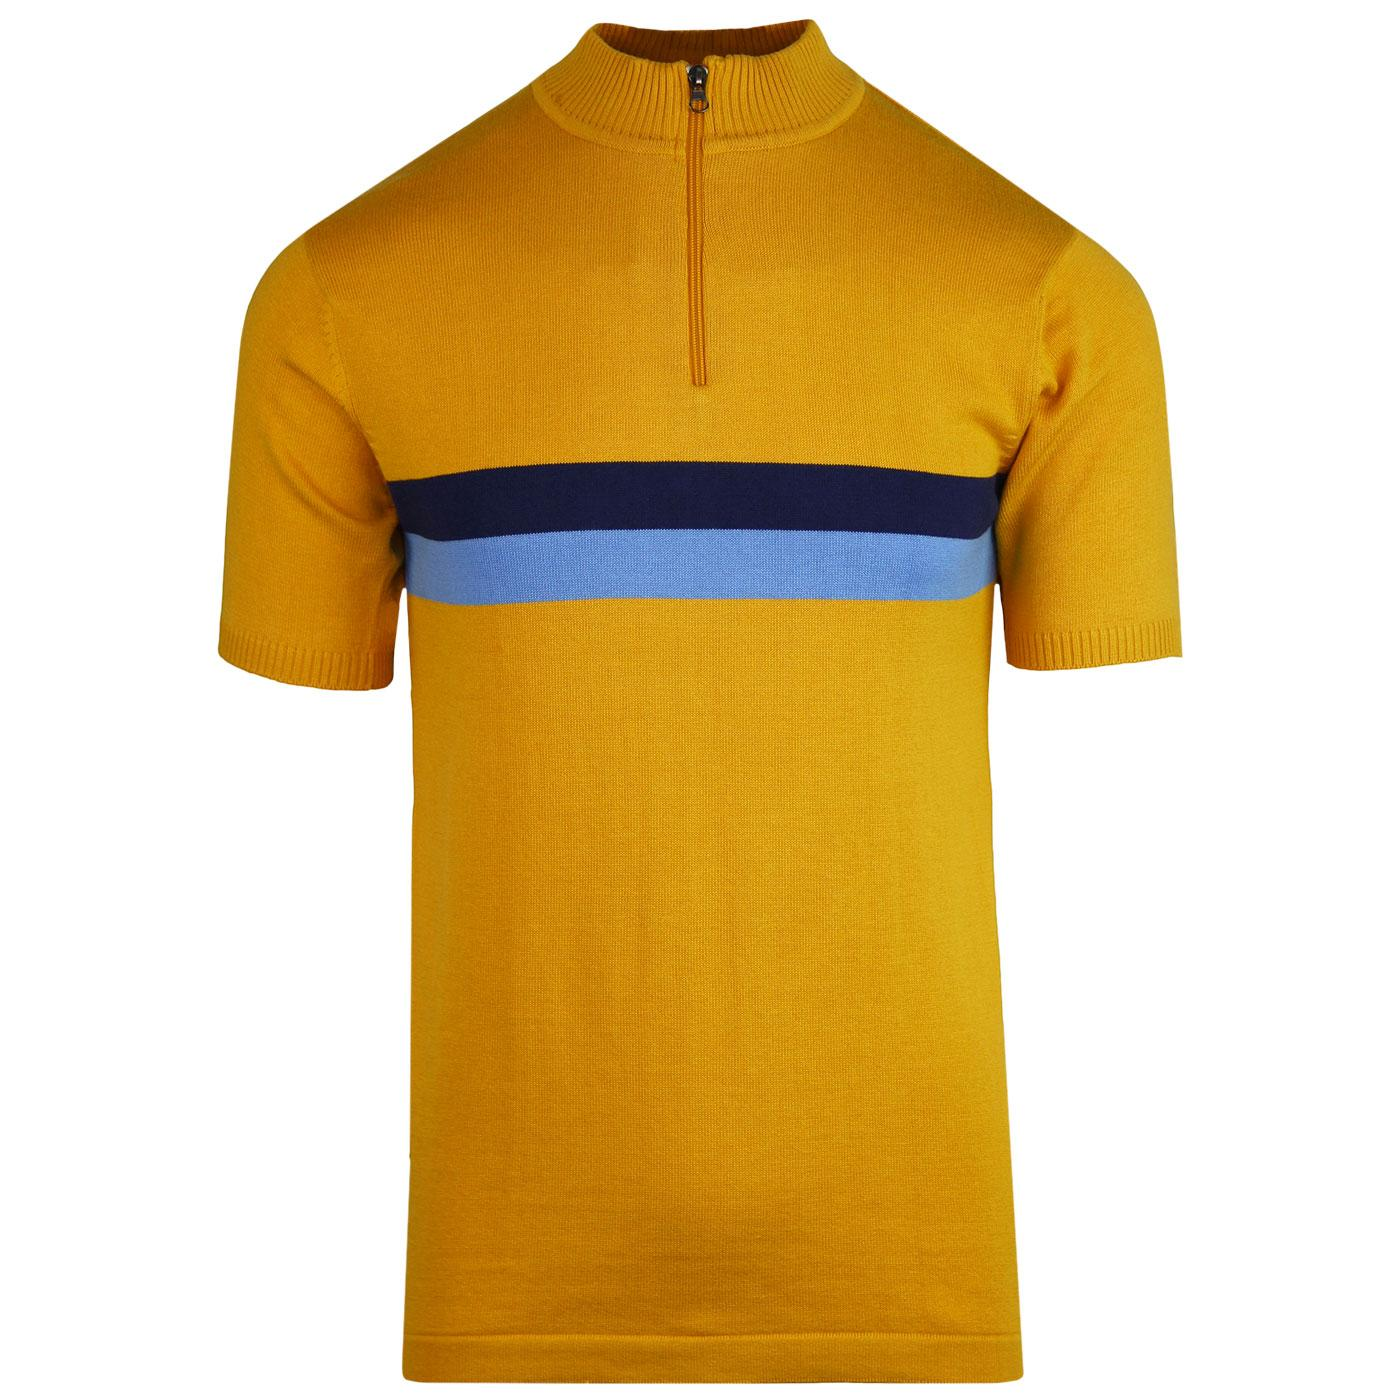 Lynex MADCAP ENGLAND Mod Chest Stripe Cycling Top